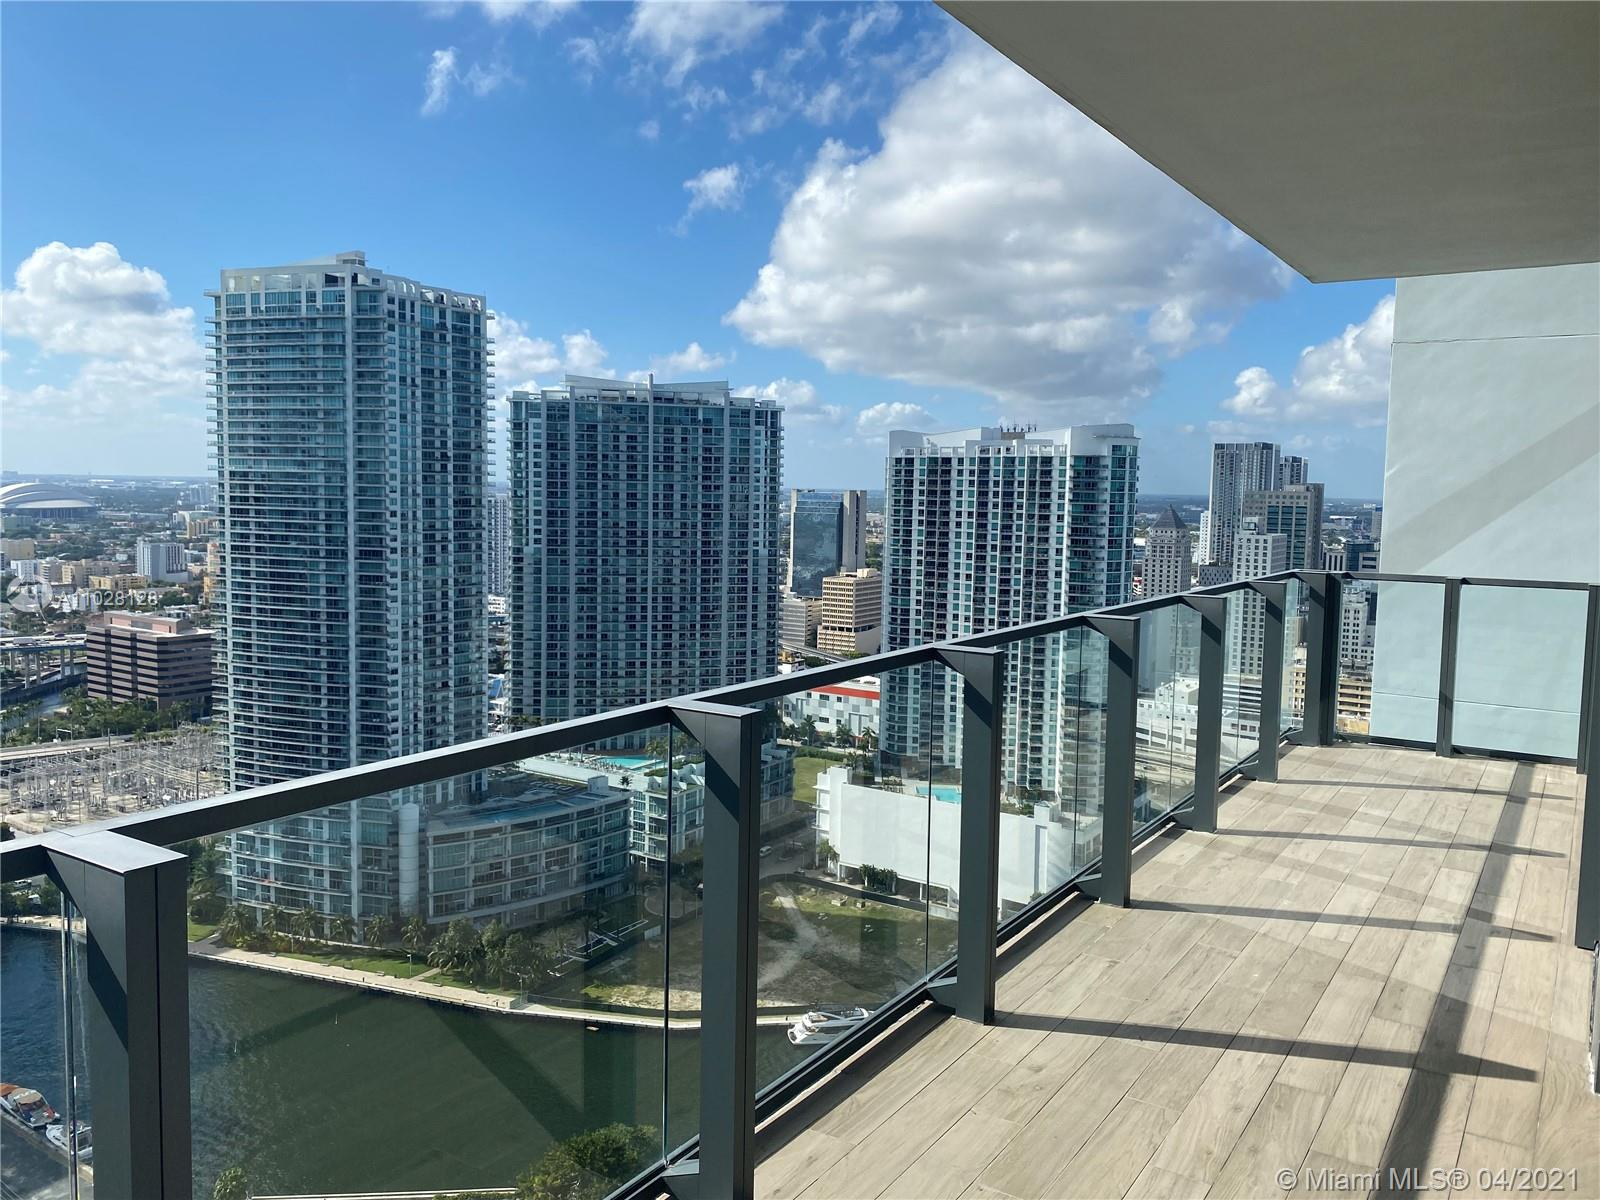 Reach Brickell City Centre #3204 - 68 SE 6th St #3204, Miami, FL 33131